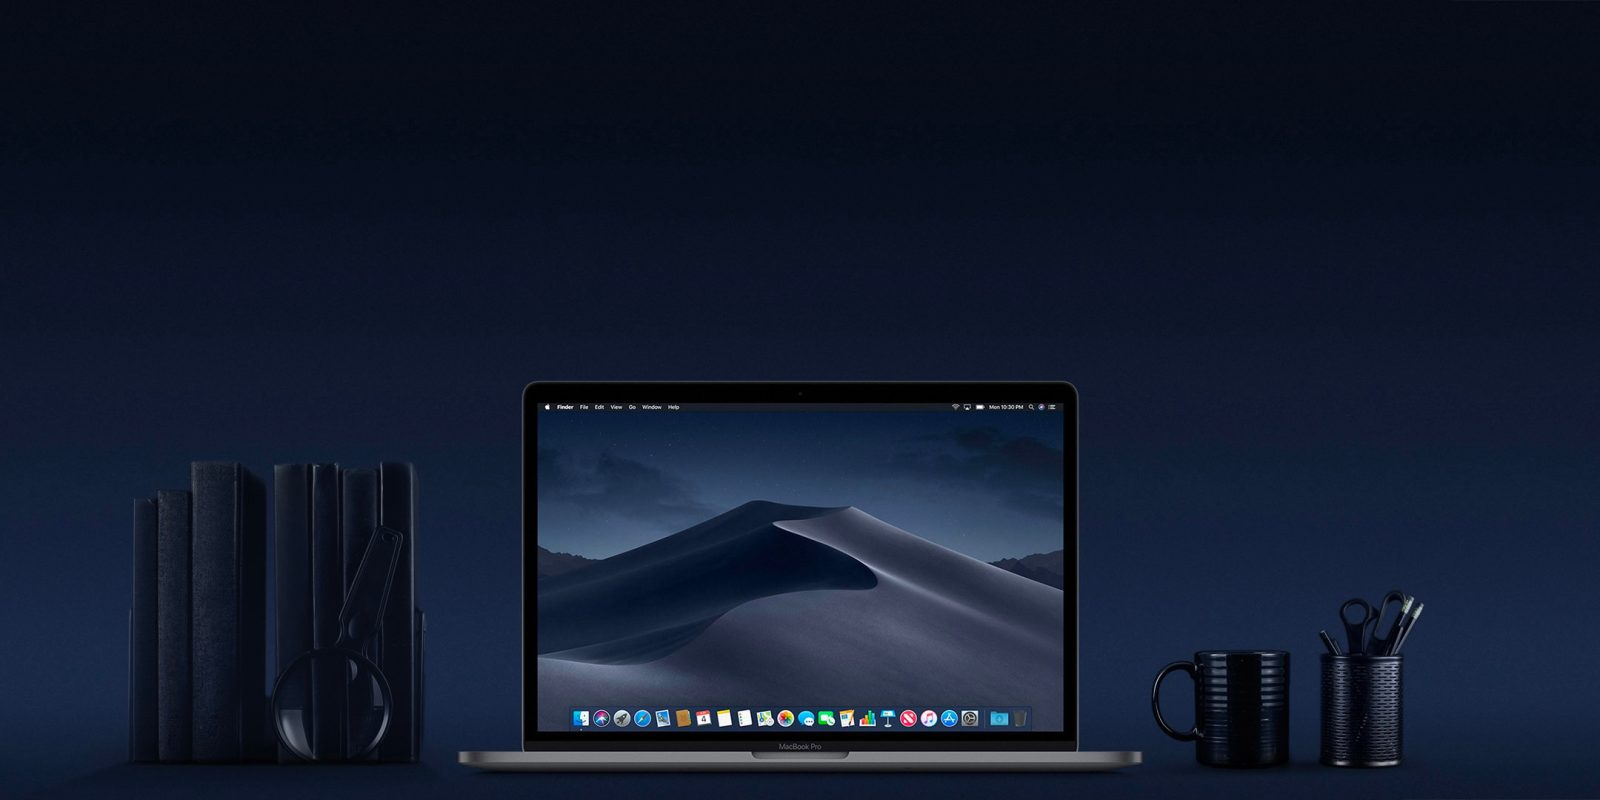 macOS Mojave now available with Dark Mode, News and Home